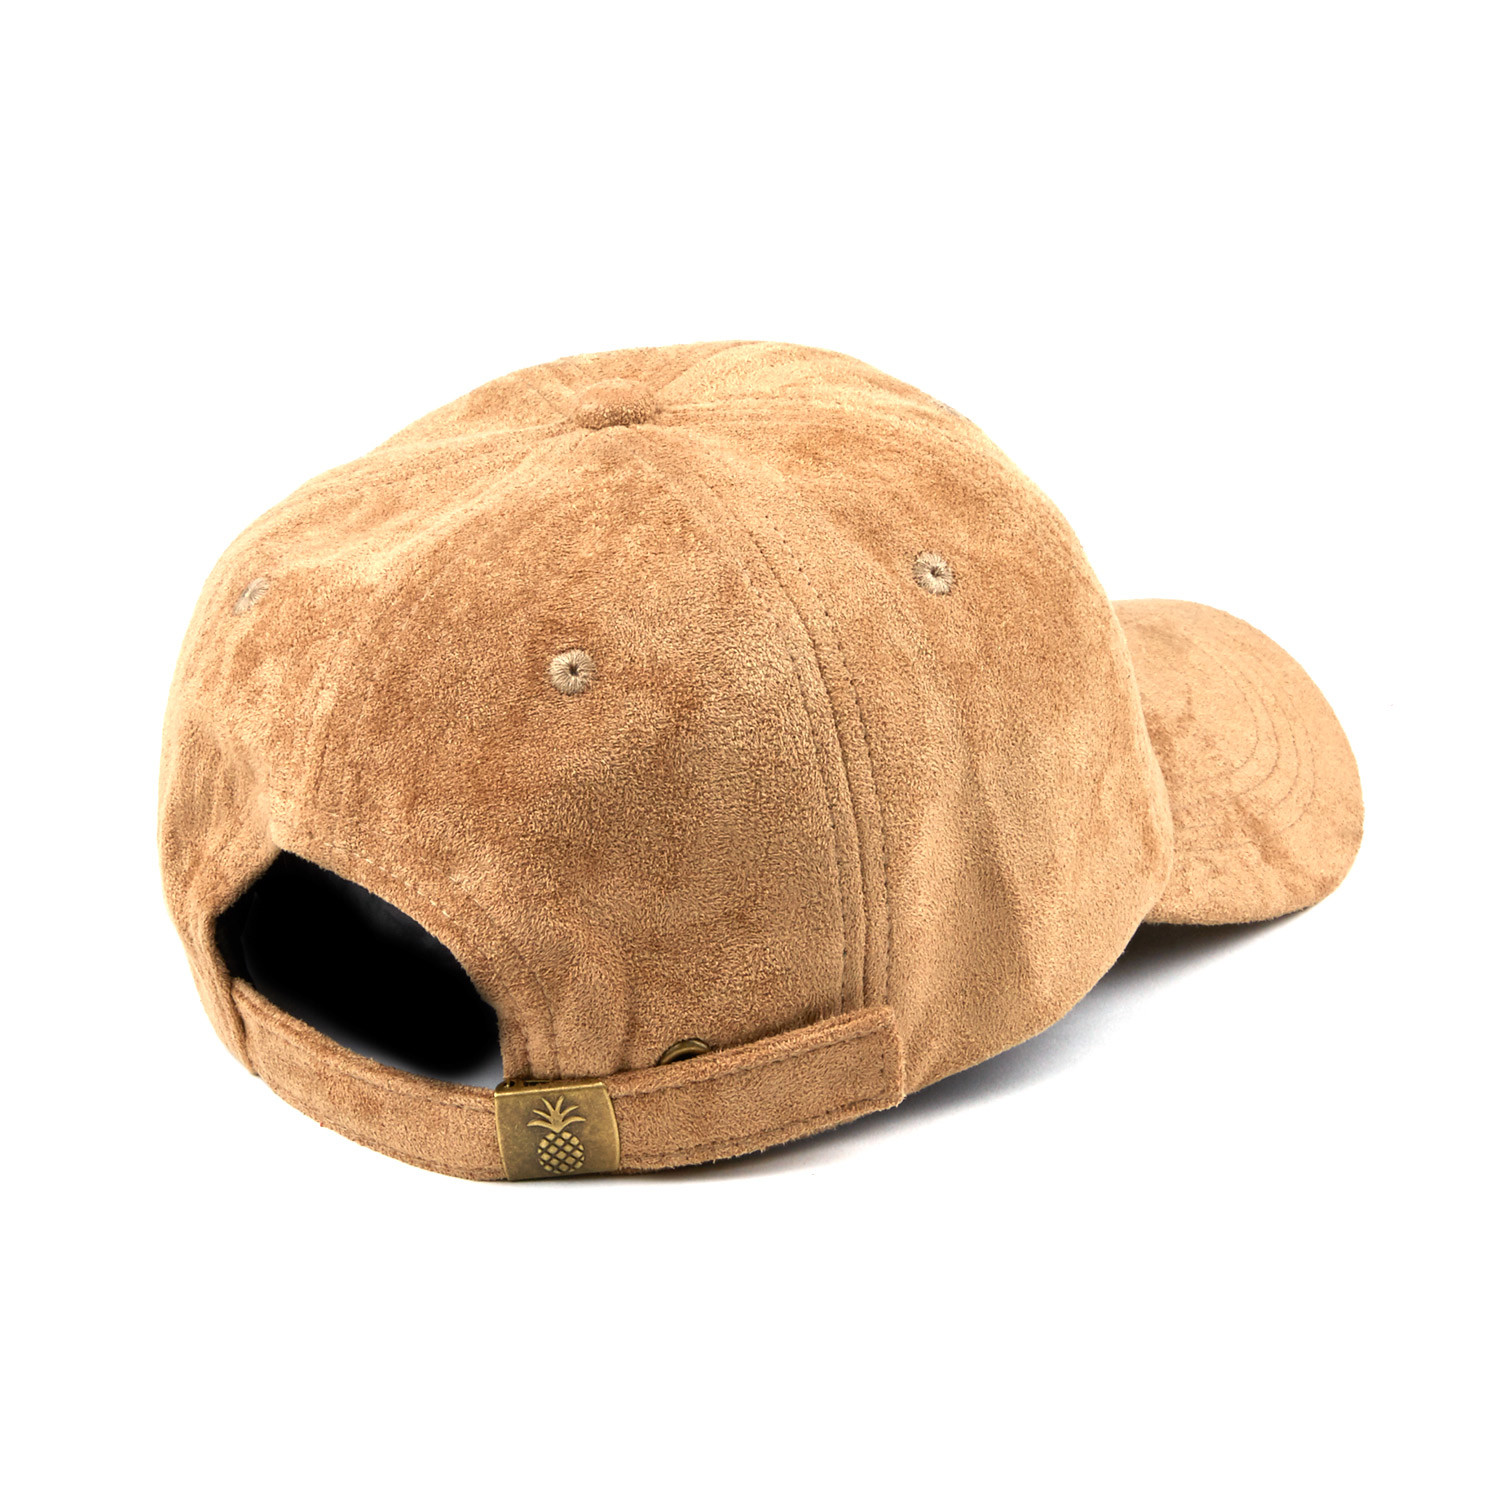 Pineapple Suede Dad Hat    Camel - Qilo NYC FASHION - Touch of Modern 7f028fe7d4e